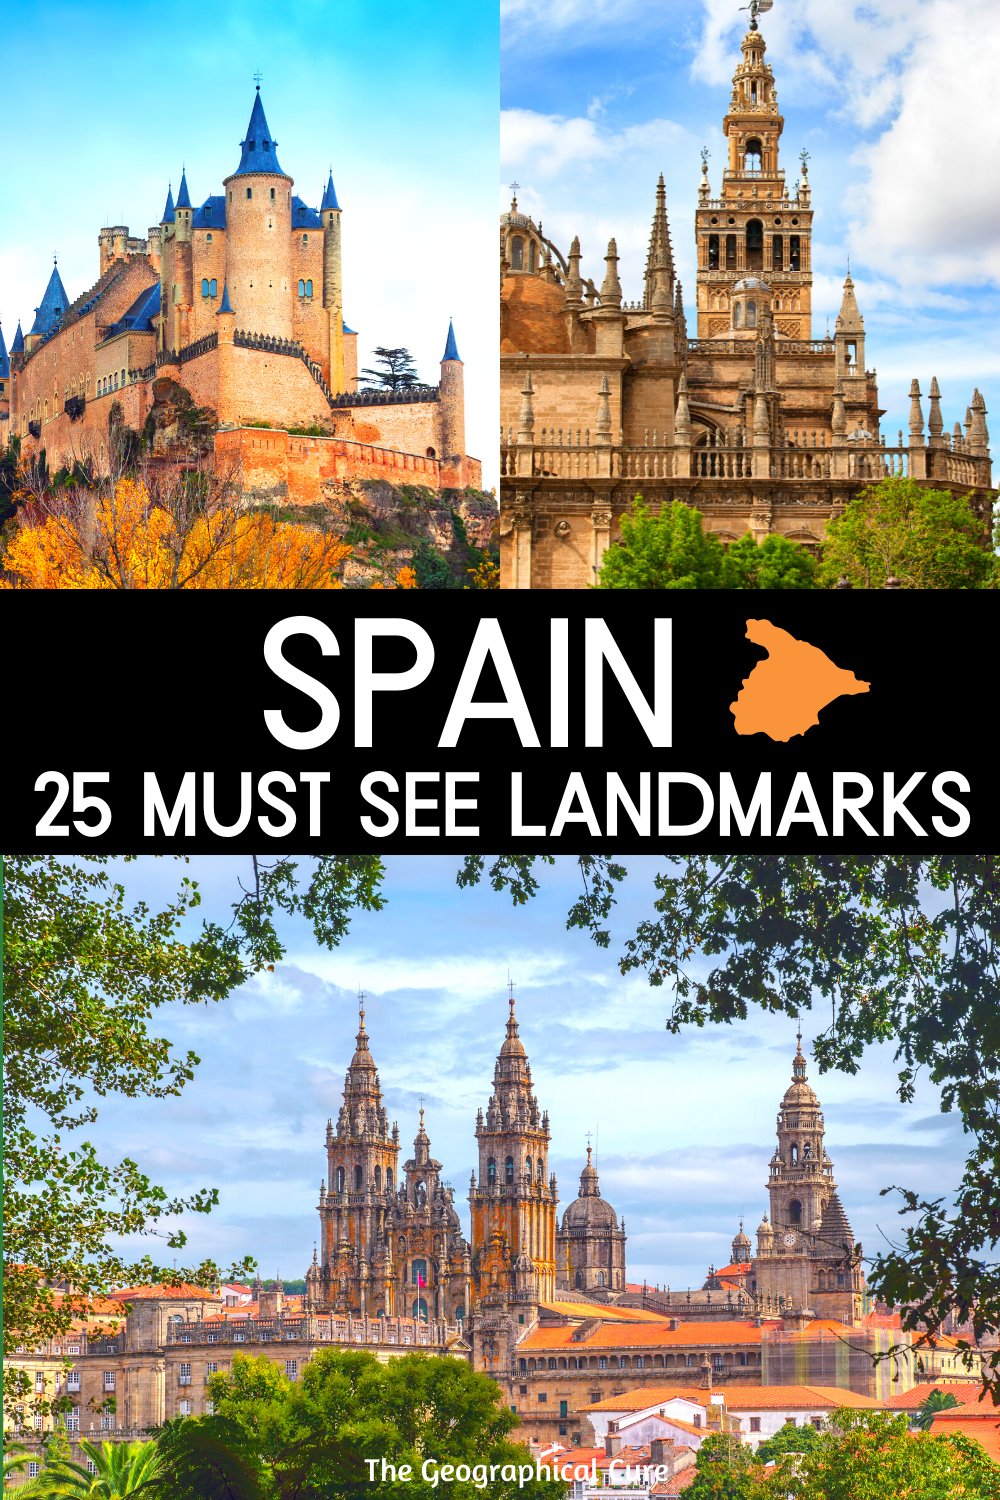 Spain: 25 Landmarks for Your Bucket List